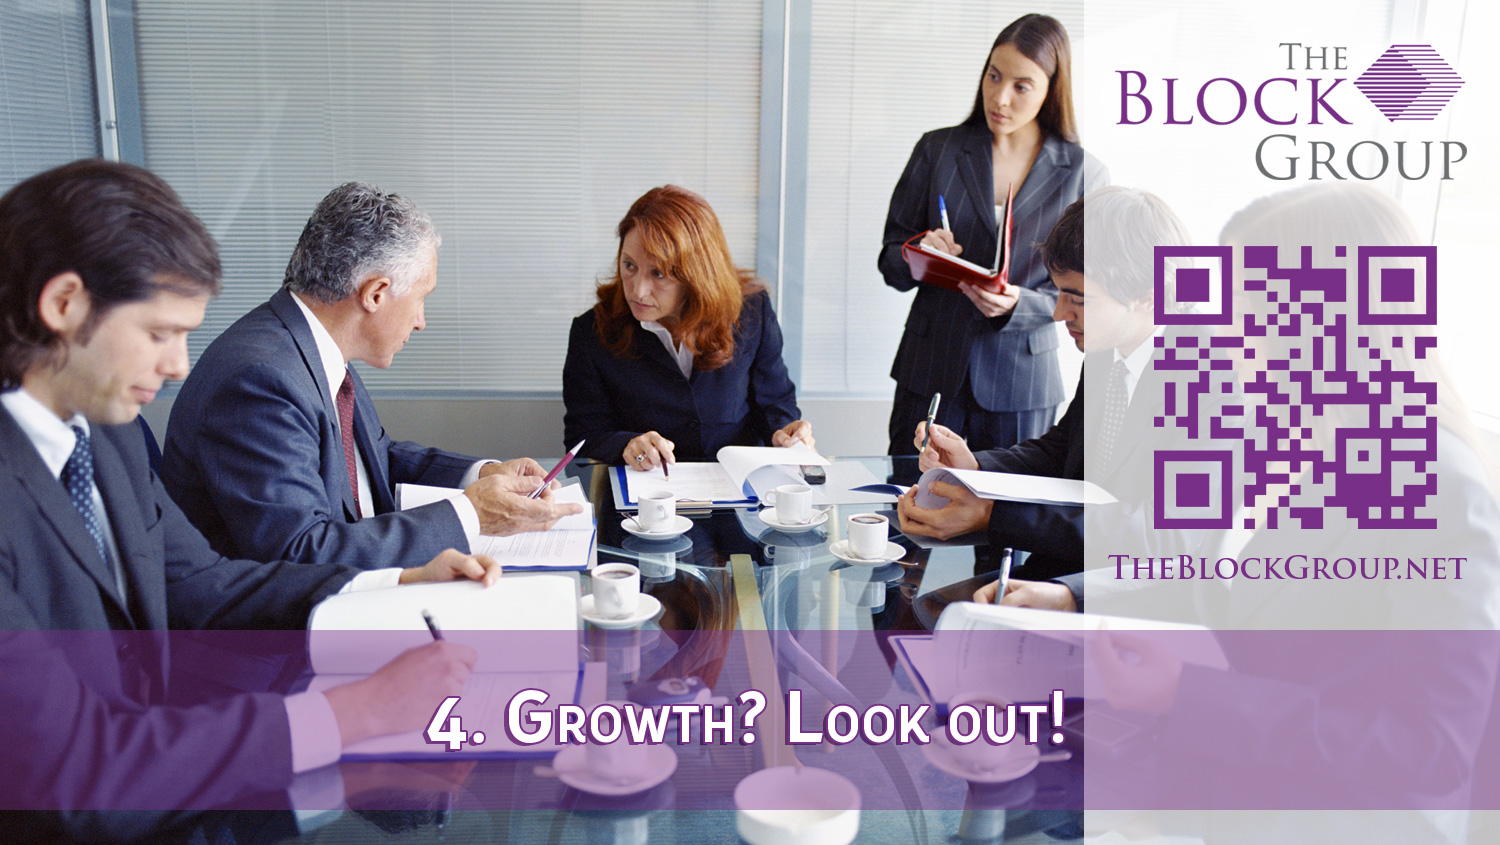 004.-Growth-Look-out